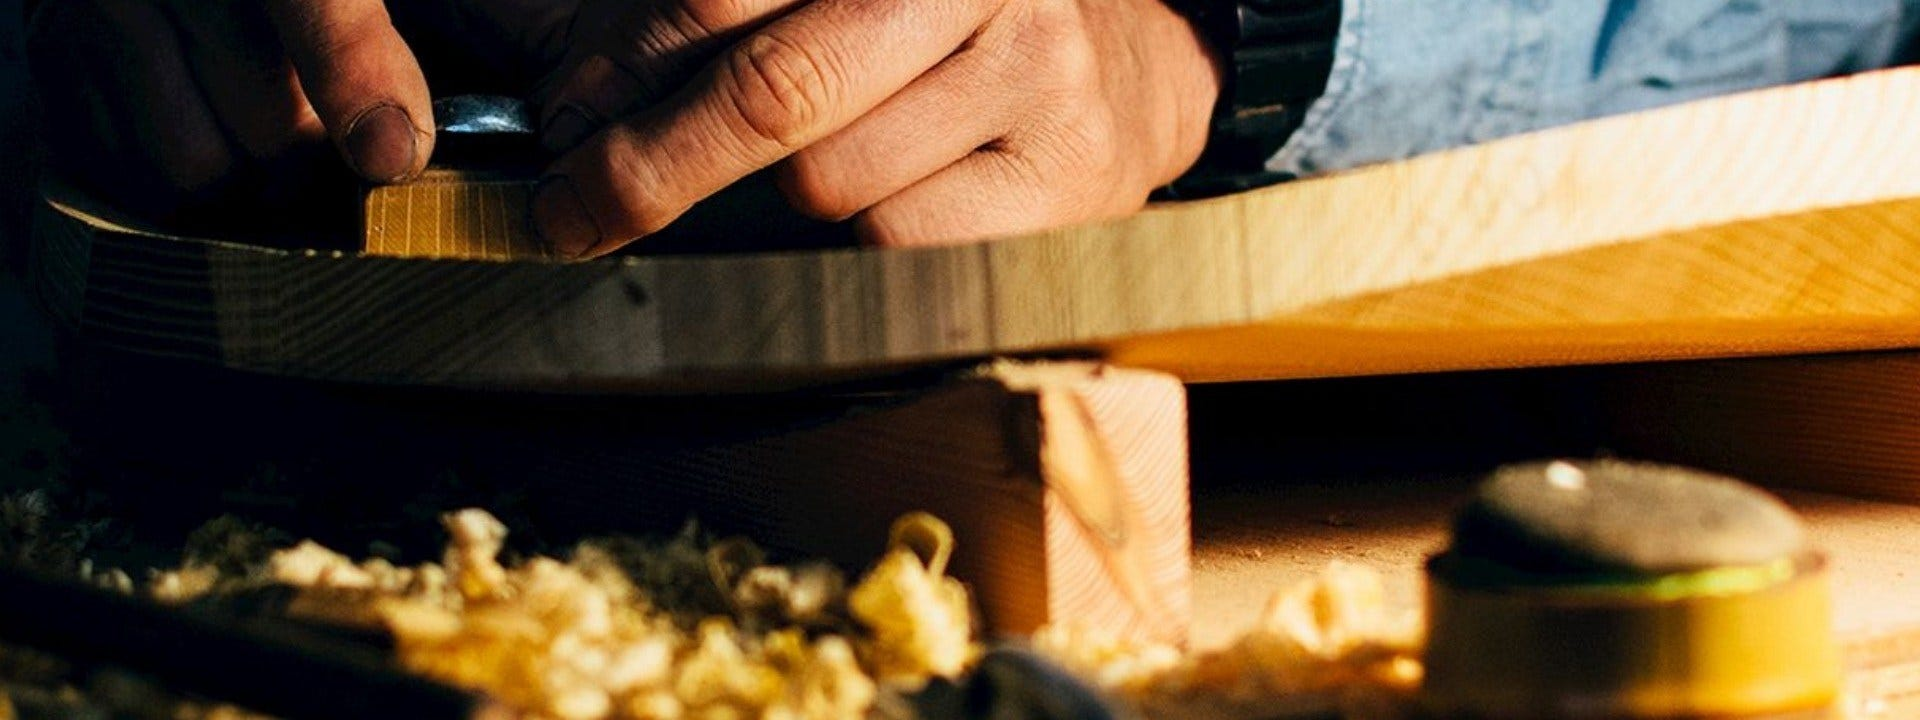 Handcrafting Zen Chairs in Japan